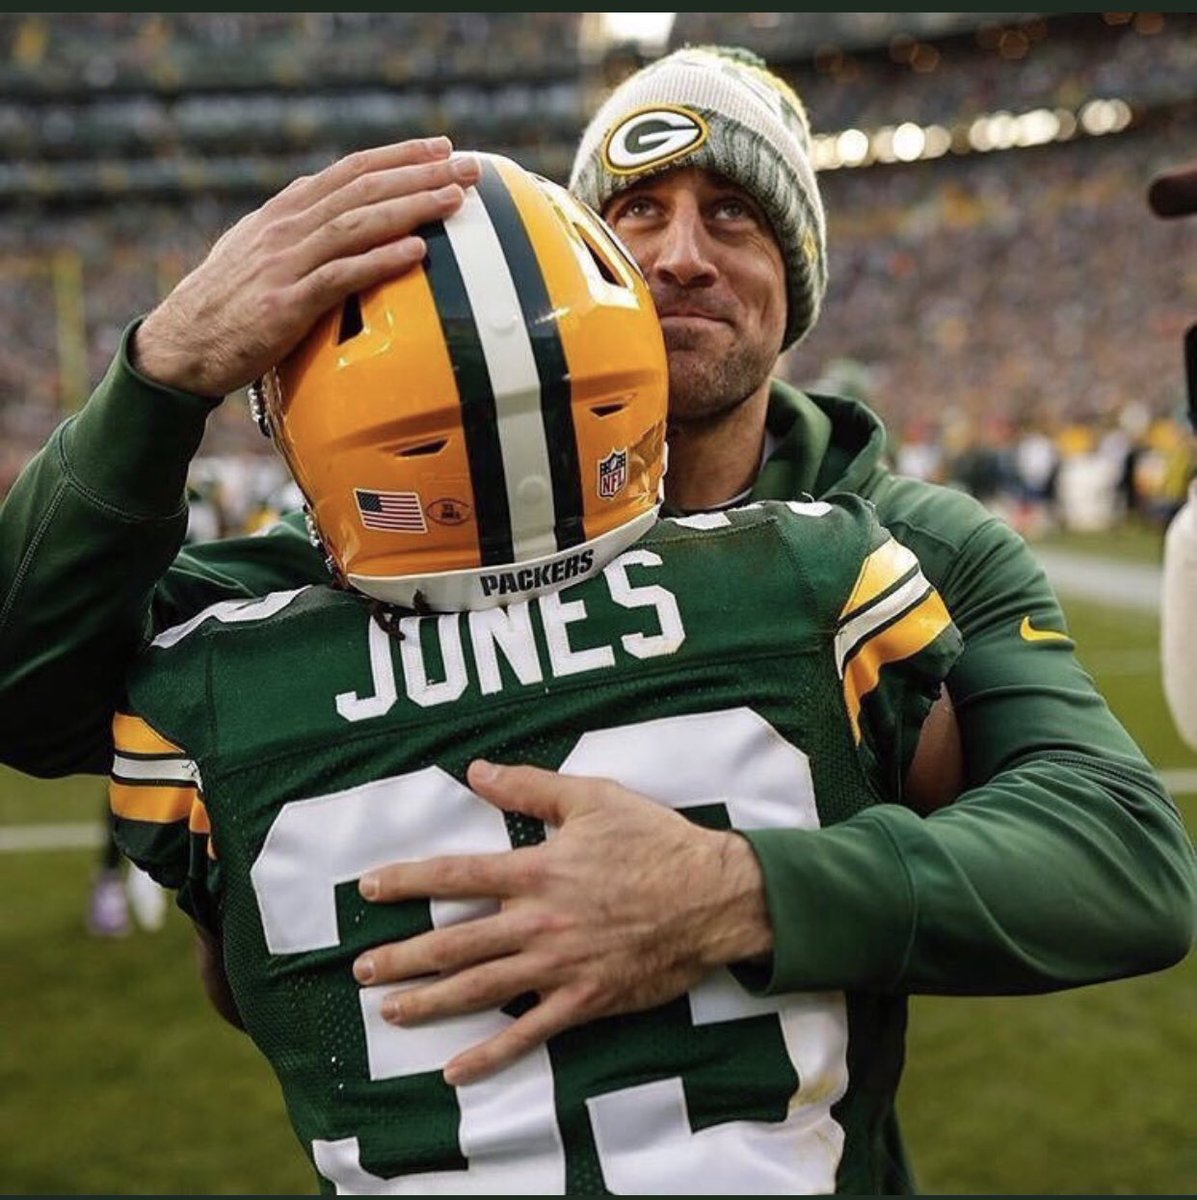 Two notable Packers' Aaron birthdays today: Aaron Rodgers turns 37 years old and Aaron Jones turns 26 years old.